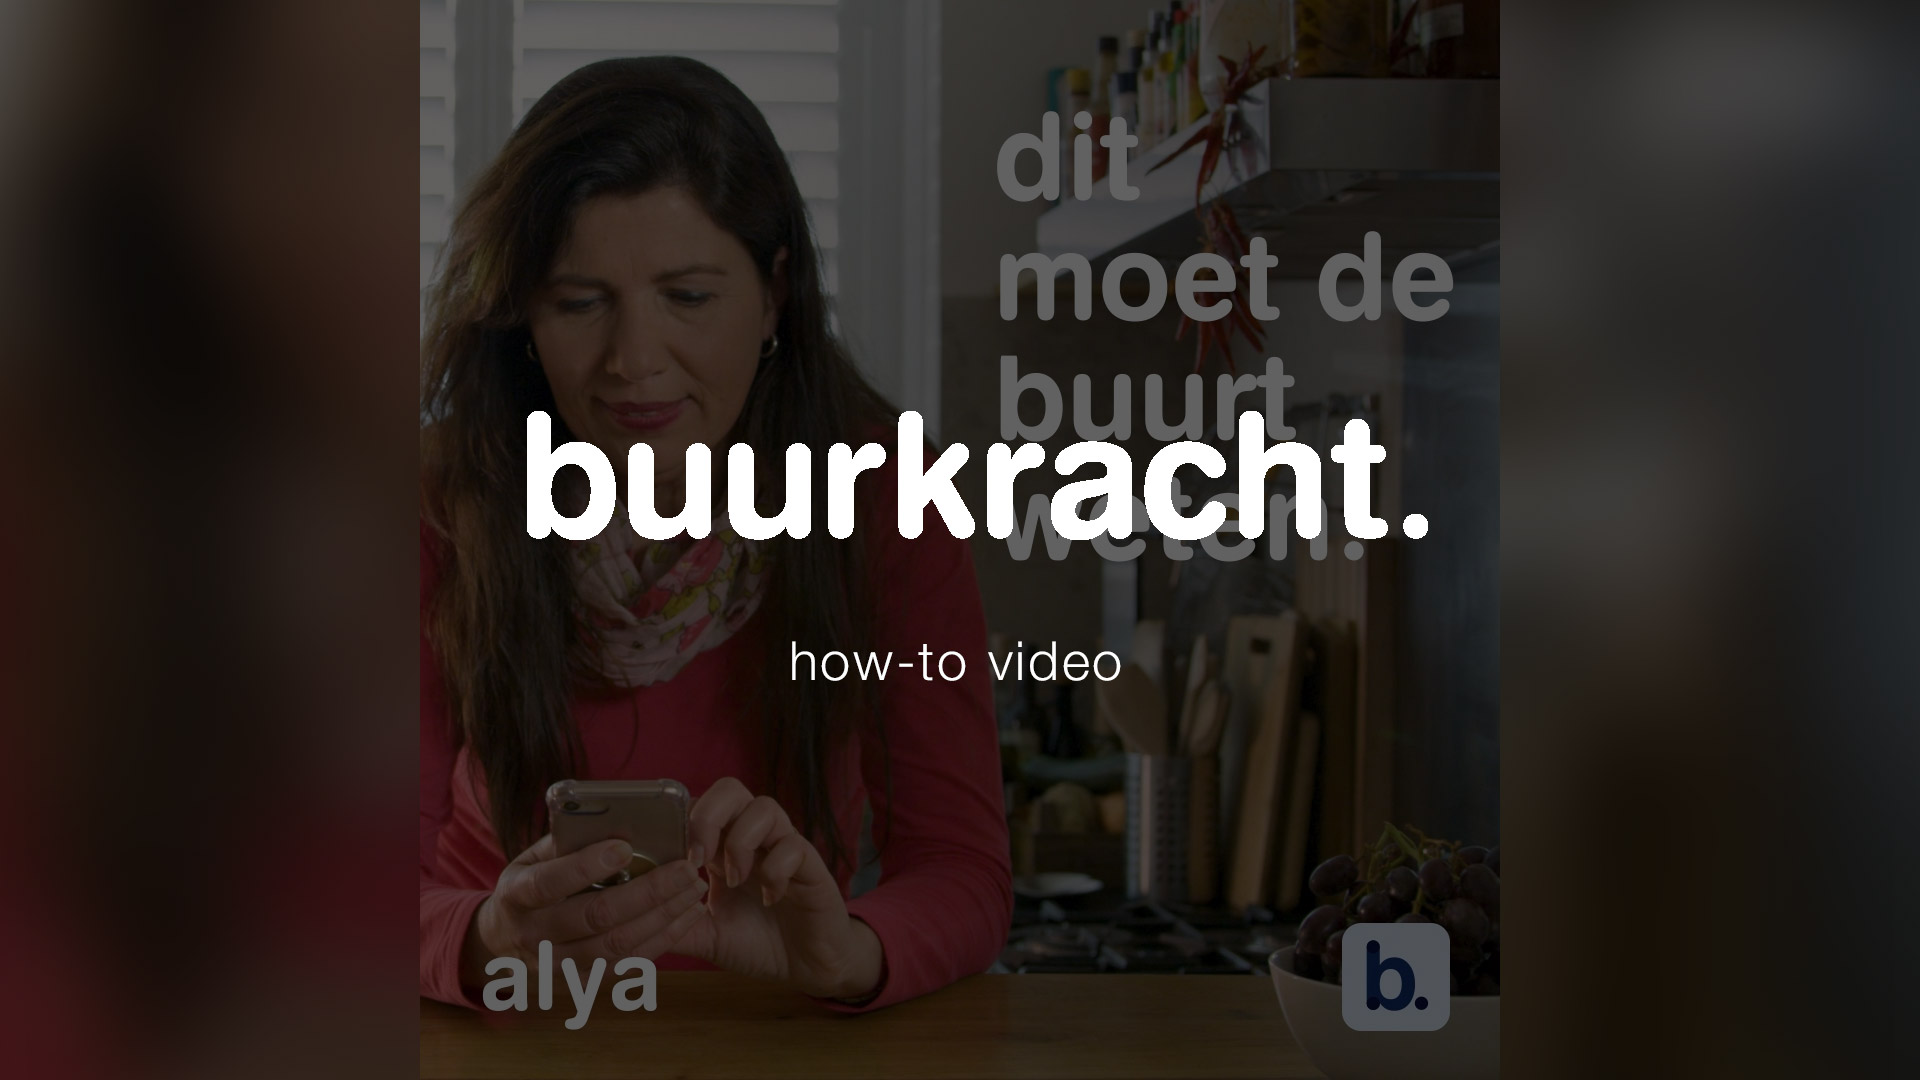 buurkracht app video how-to uitleg video